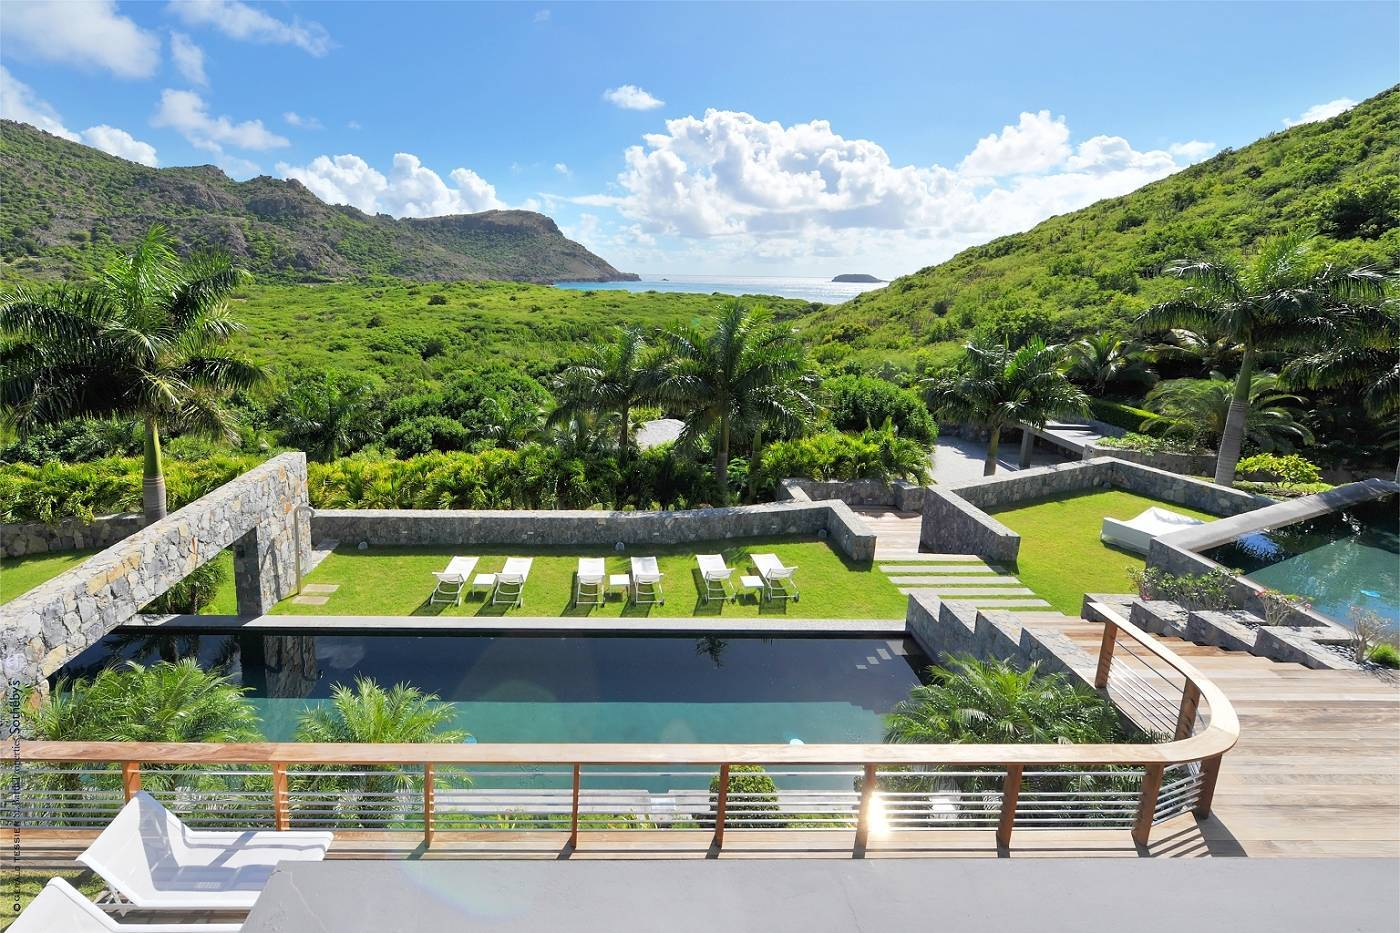 The Villas of St. Barth's